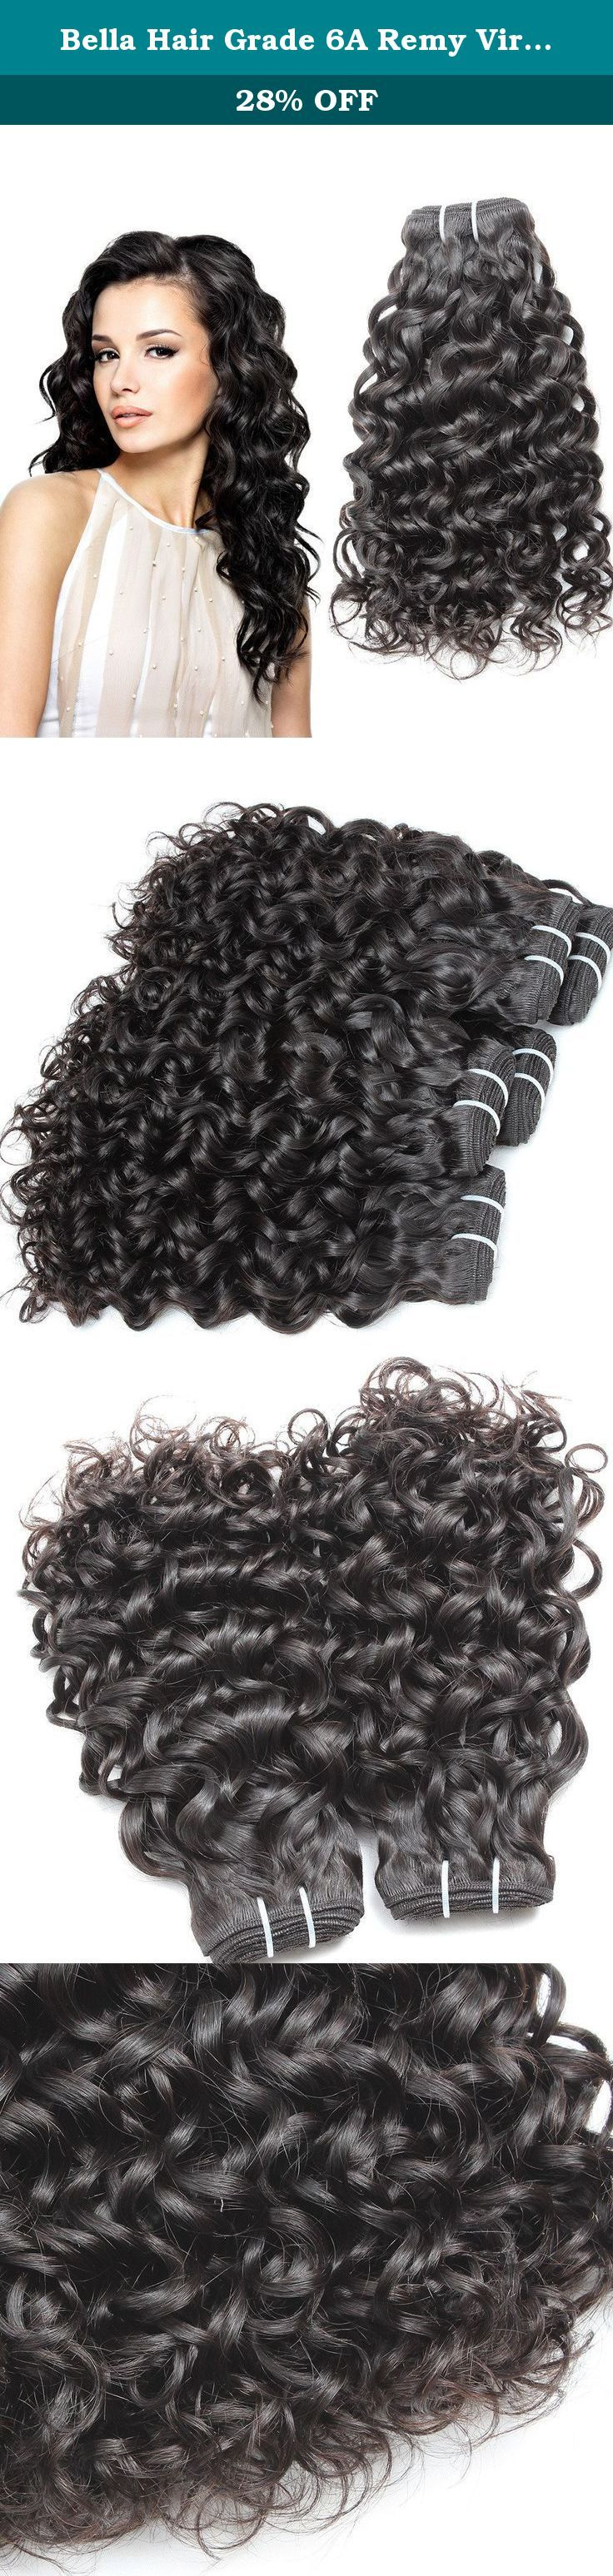 """Bella Hair Grade 6A Remy Virgin Hair Brazilian Water Wave Weave Hair 1 Bundles 20"""" Human Hair Extensions Natural Color. Brazilian Water Wave Hair Extensions 1) Material: 100% virgin human hair , unprocessed natural hair with no chemical process, No Acid! No Dye! 100% Real Human Hair. 2) Hair Textures: Water Wave Hair 3) Hair Type : Hair Extensions 4) Quality: Grade AAAAAA, No shedding, No tangle, No lice, intact cuticle, long lifetime 5) Length: 20 inch, 100% ture to the length 6) Color:..."""